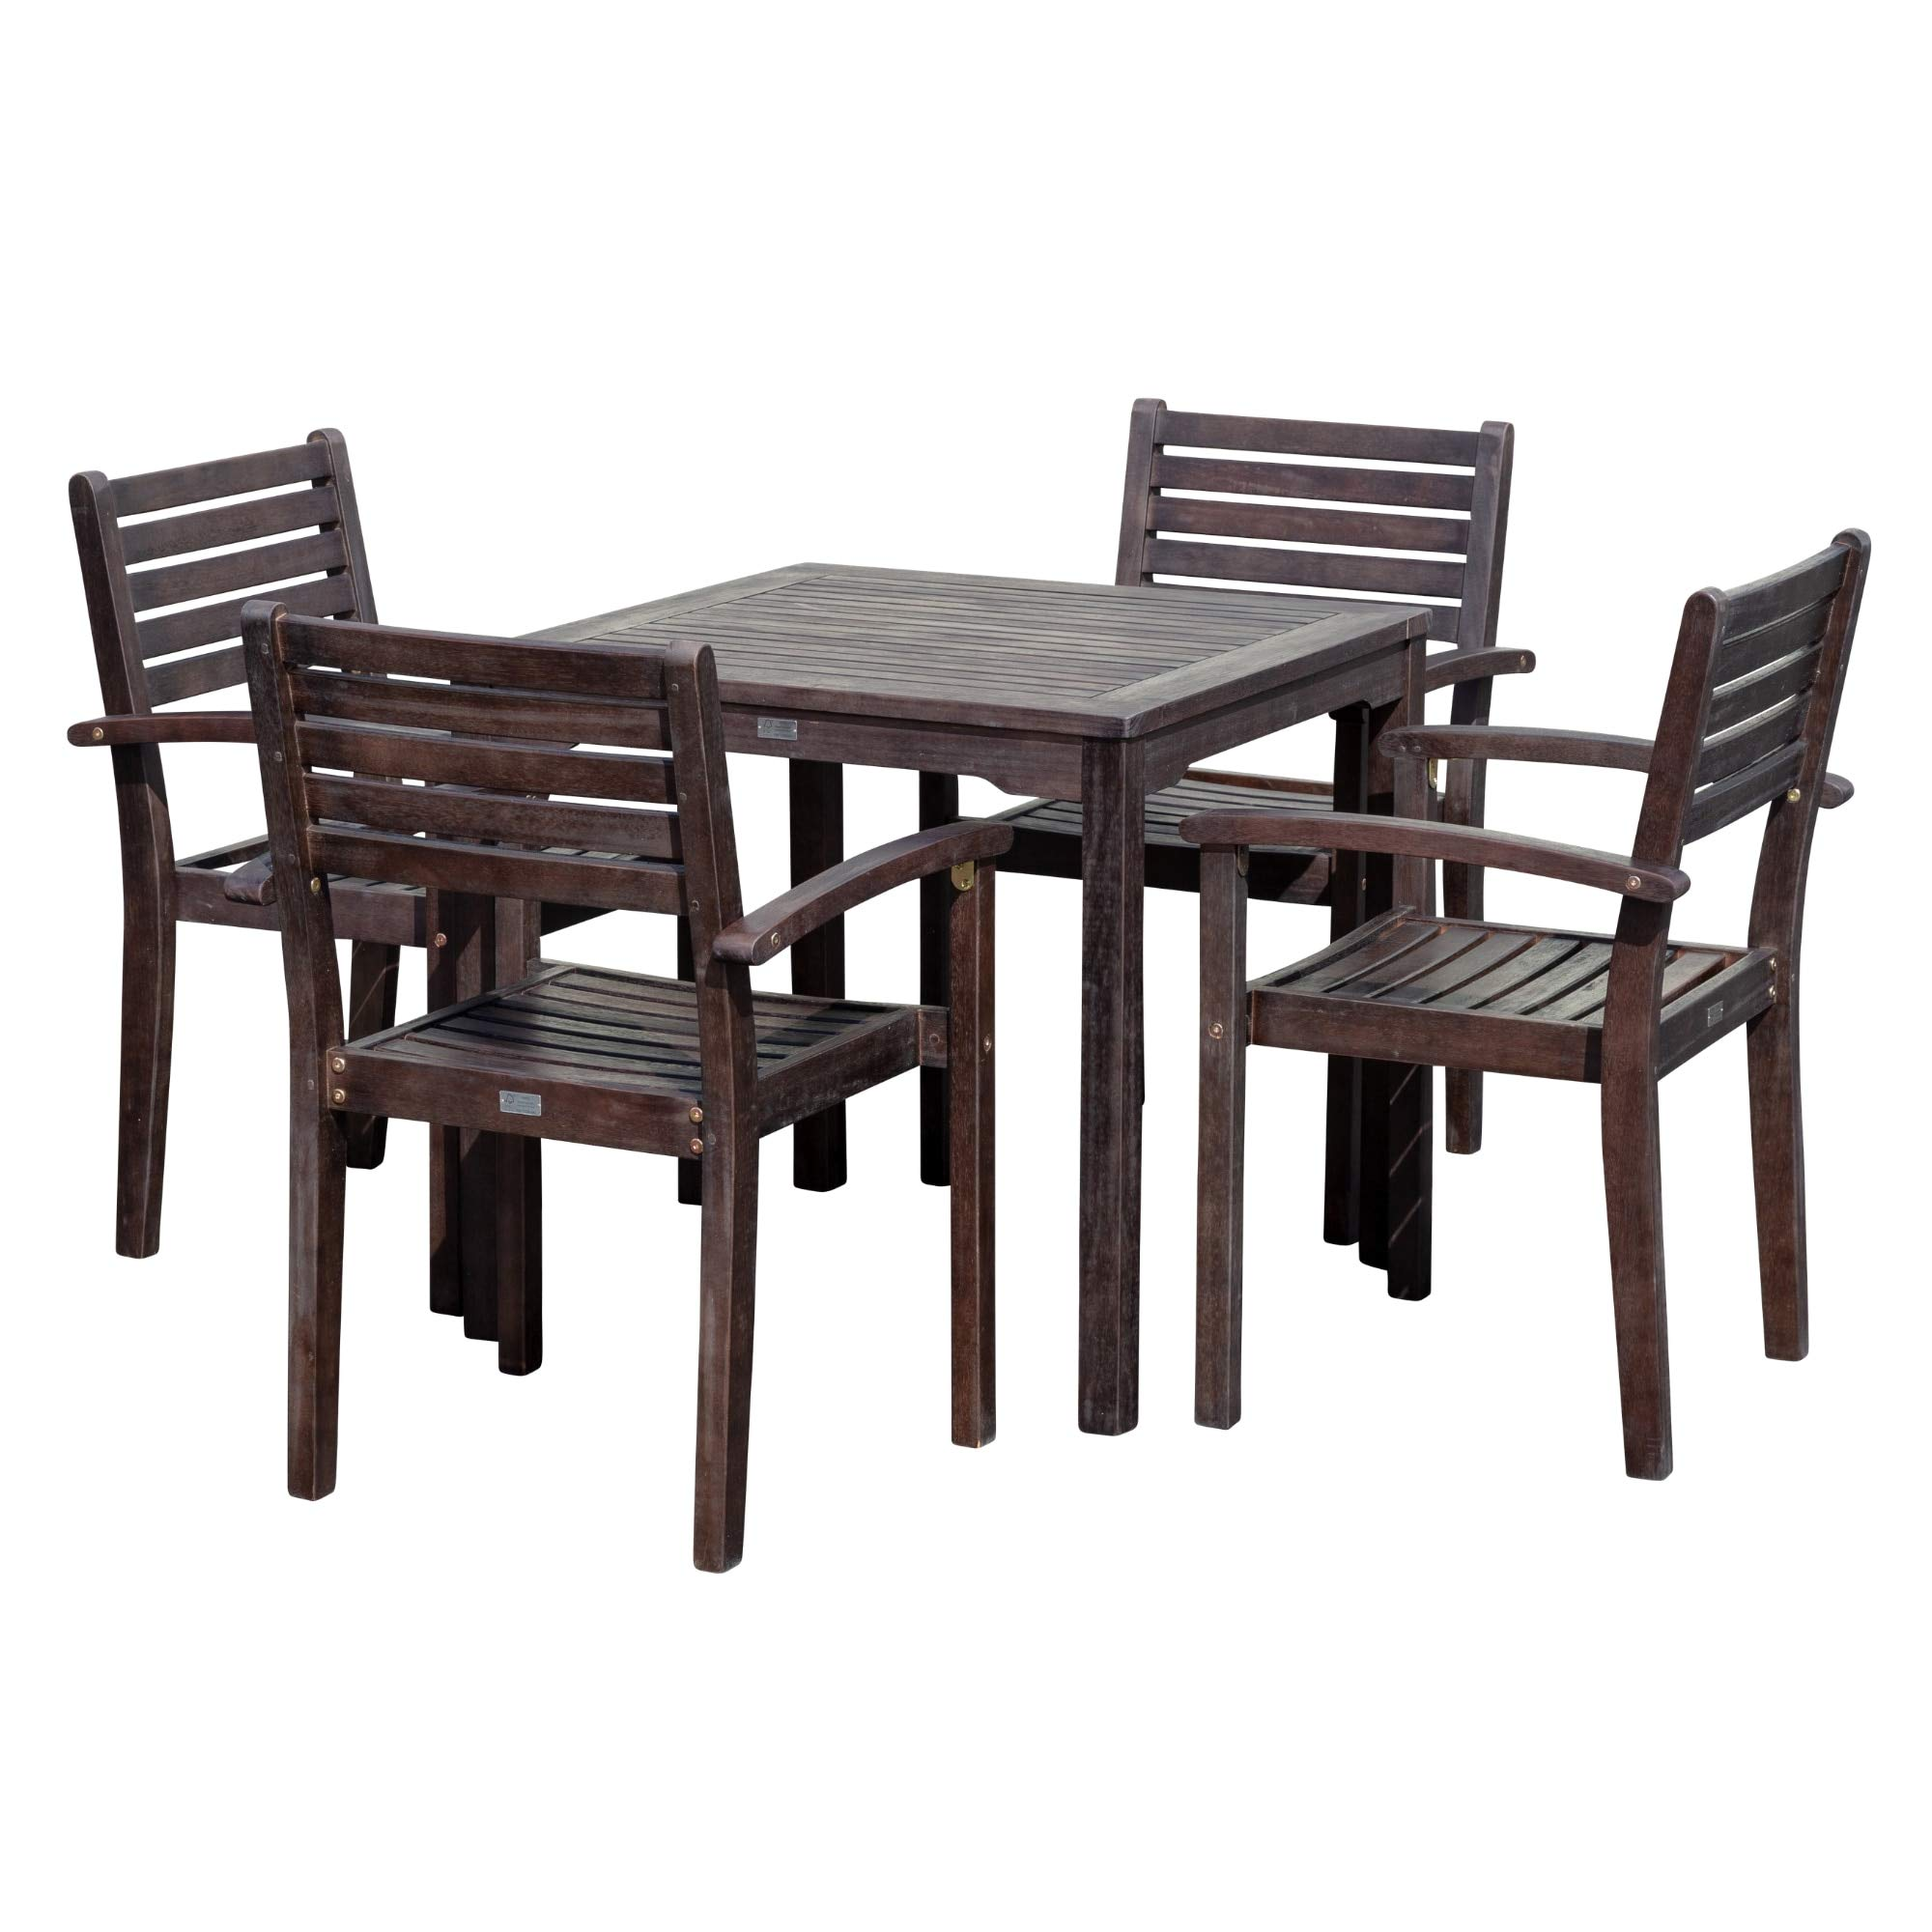 DTY Outdoor Living Leadville Square Dining Set, 5-Piece Eucalyptus Patio Furniture Set with Table and 4 Stacking Chairs, Espresso Finish